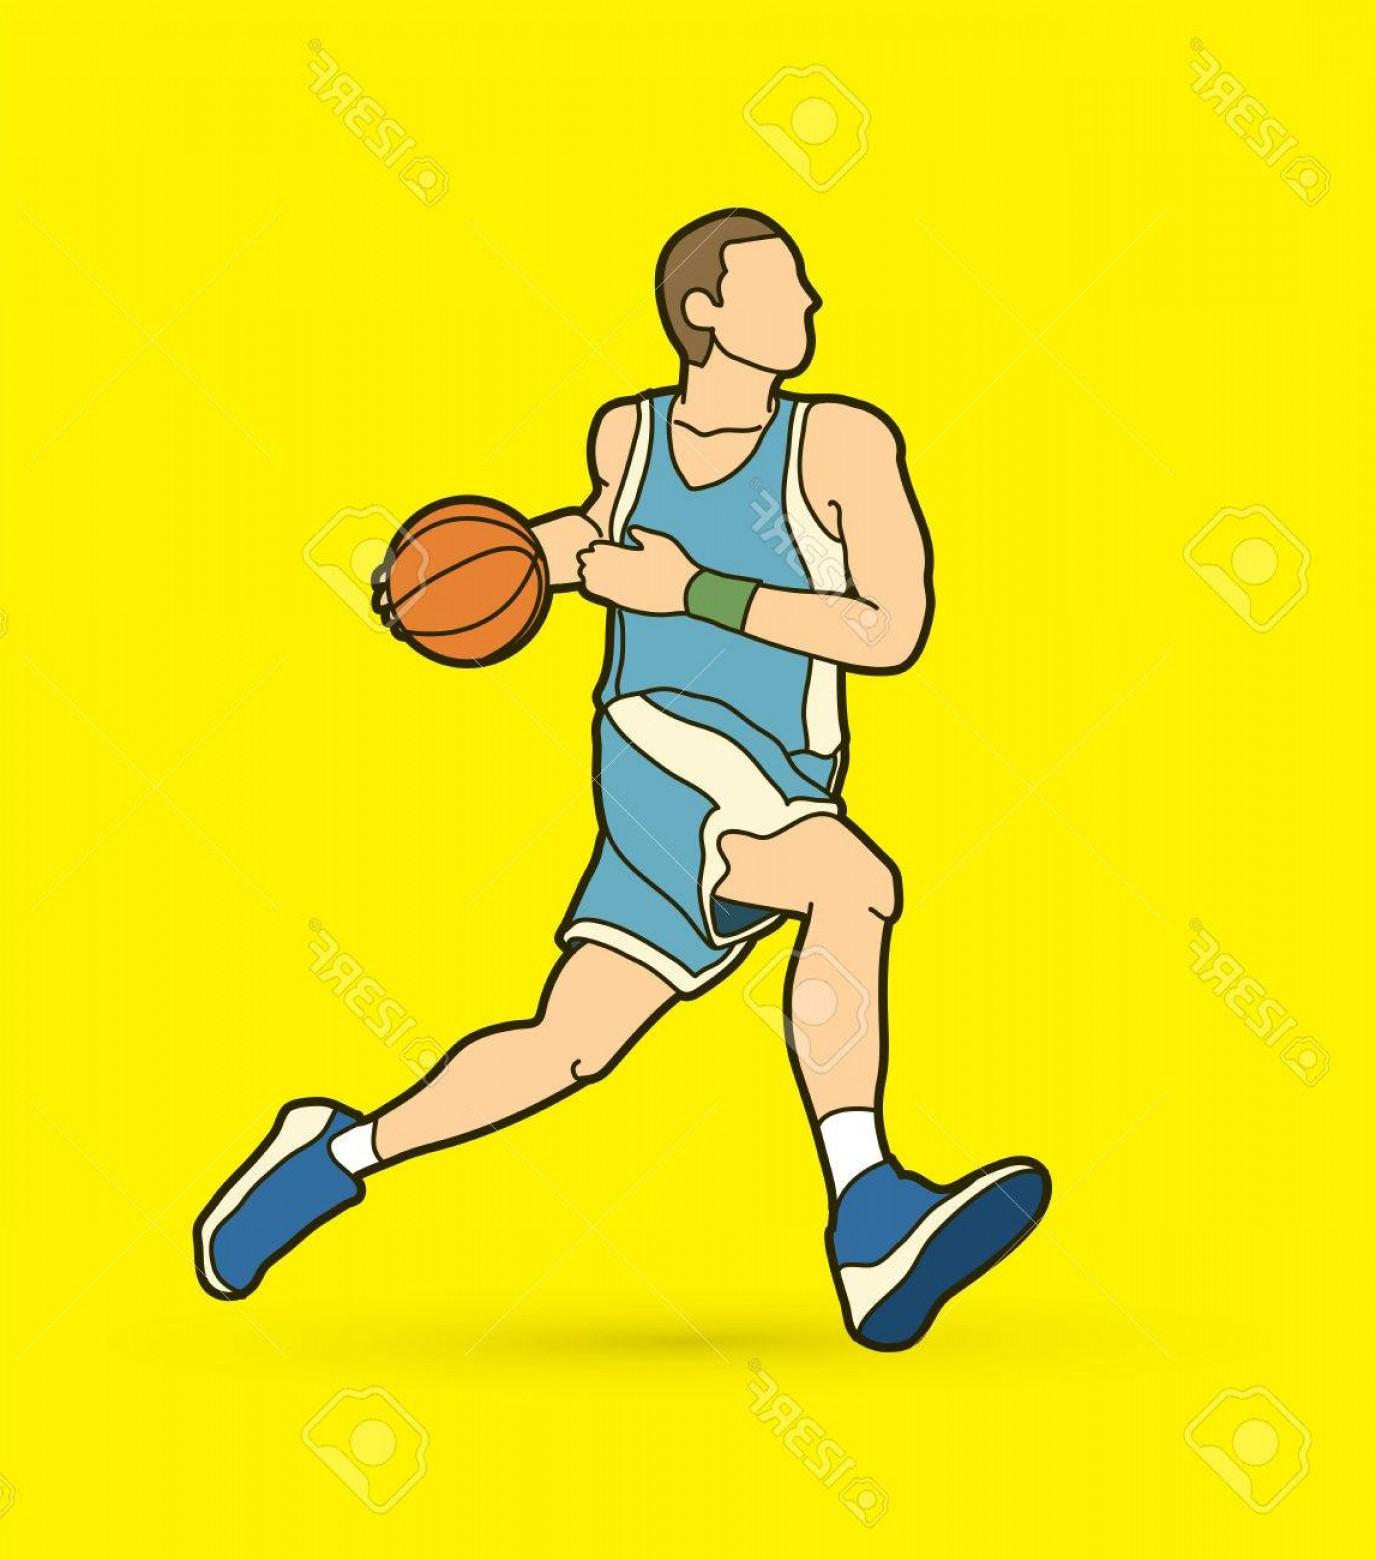 Motion Basketball Vector: Photostock Vector Basketball Player In Running Motion Color Graphic Vector